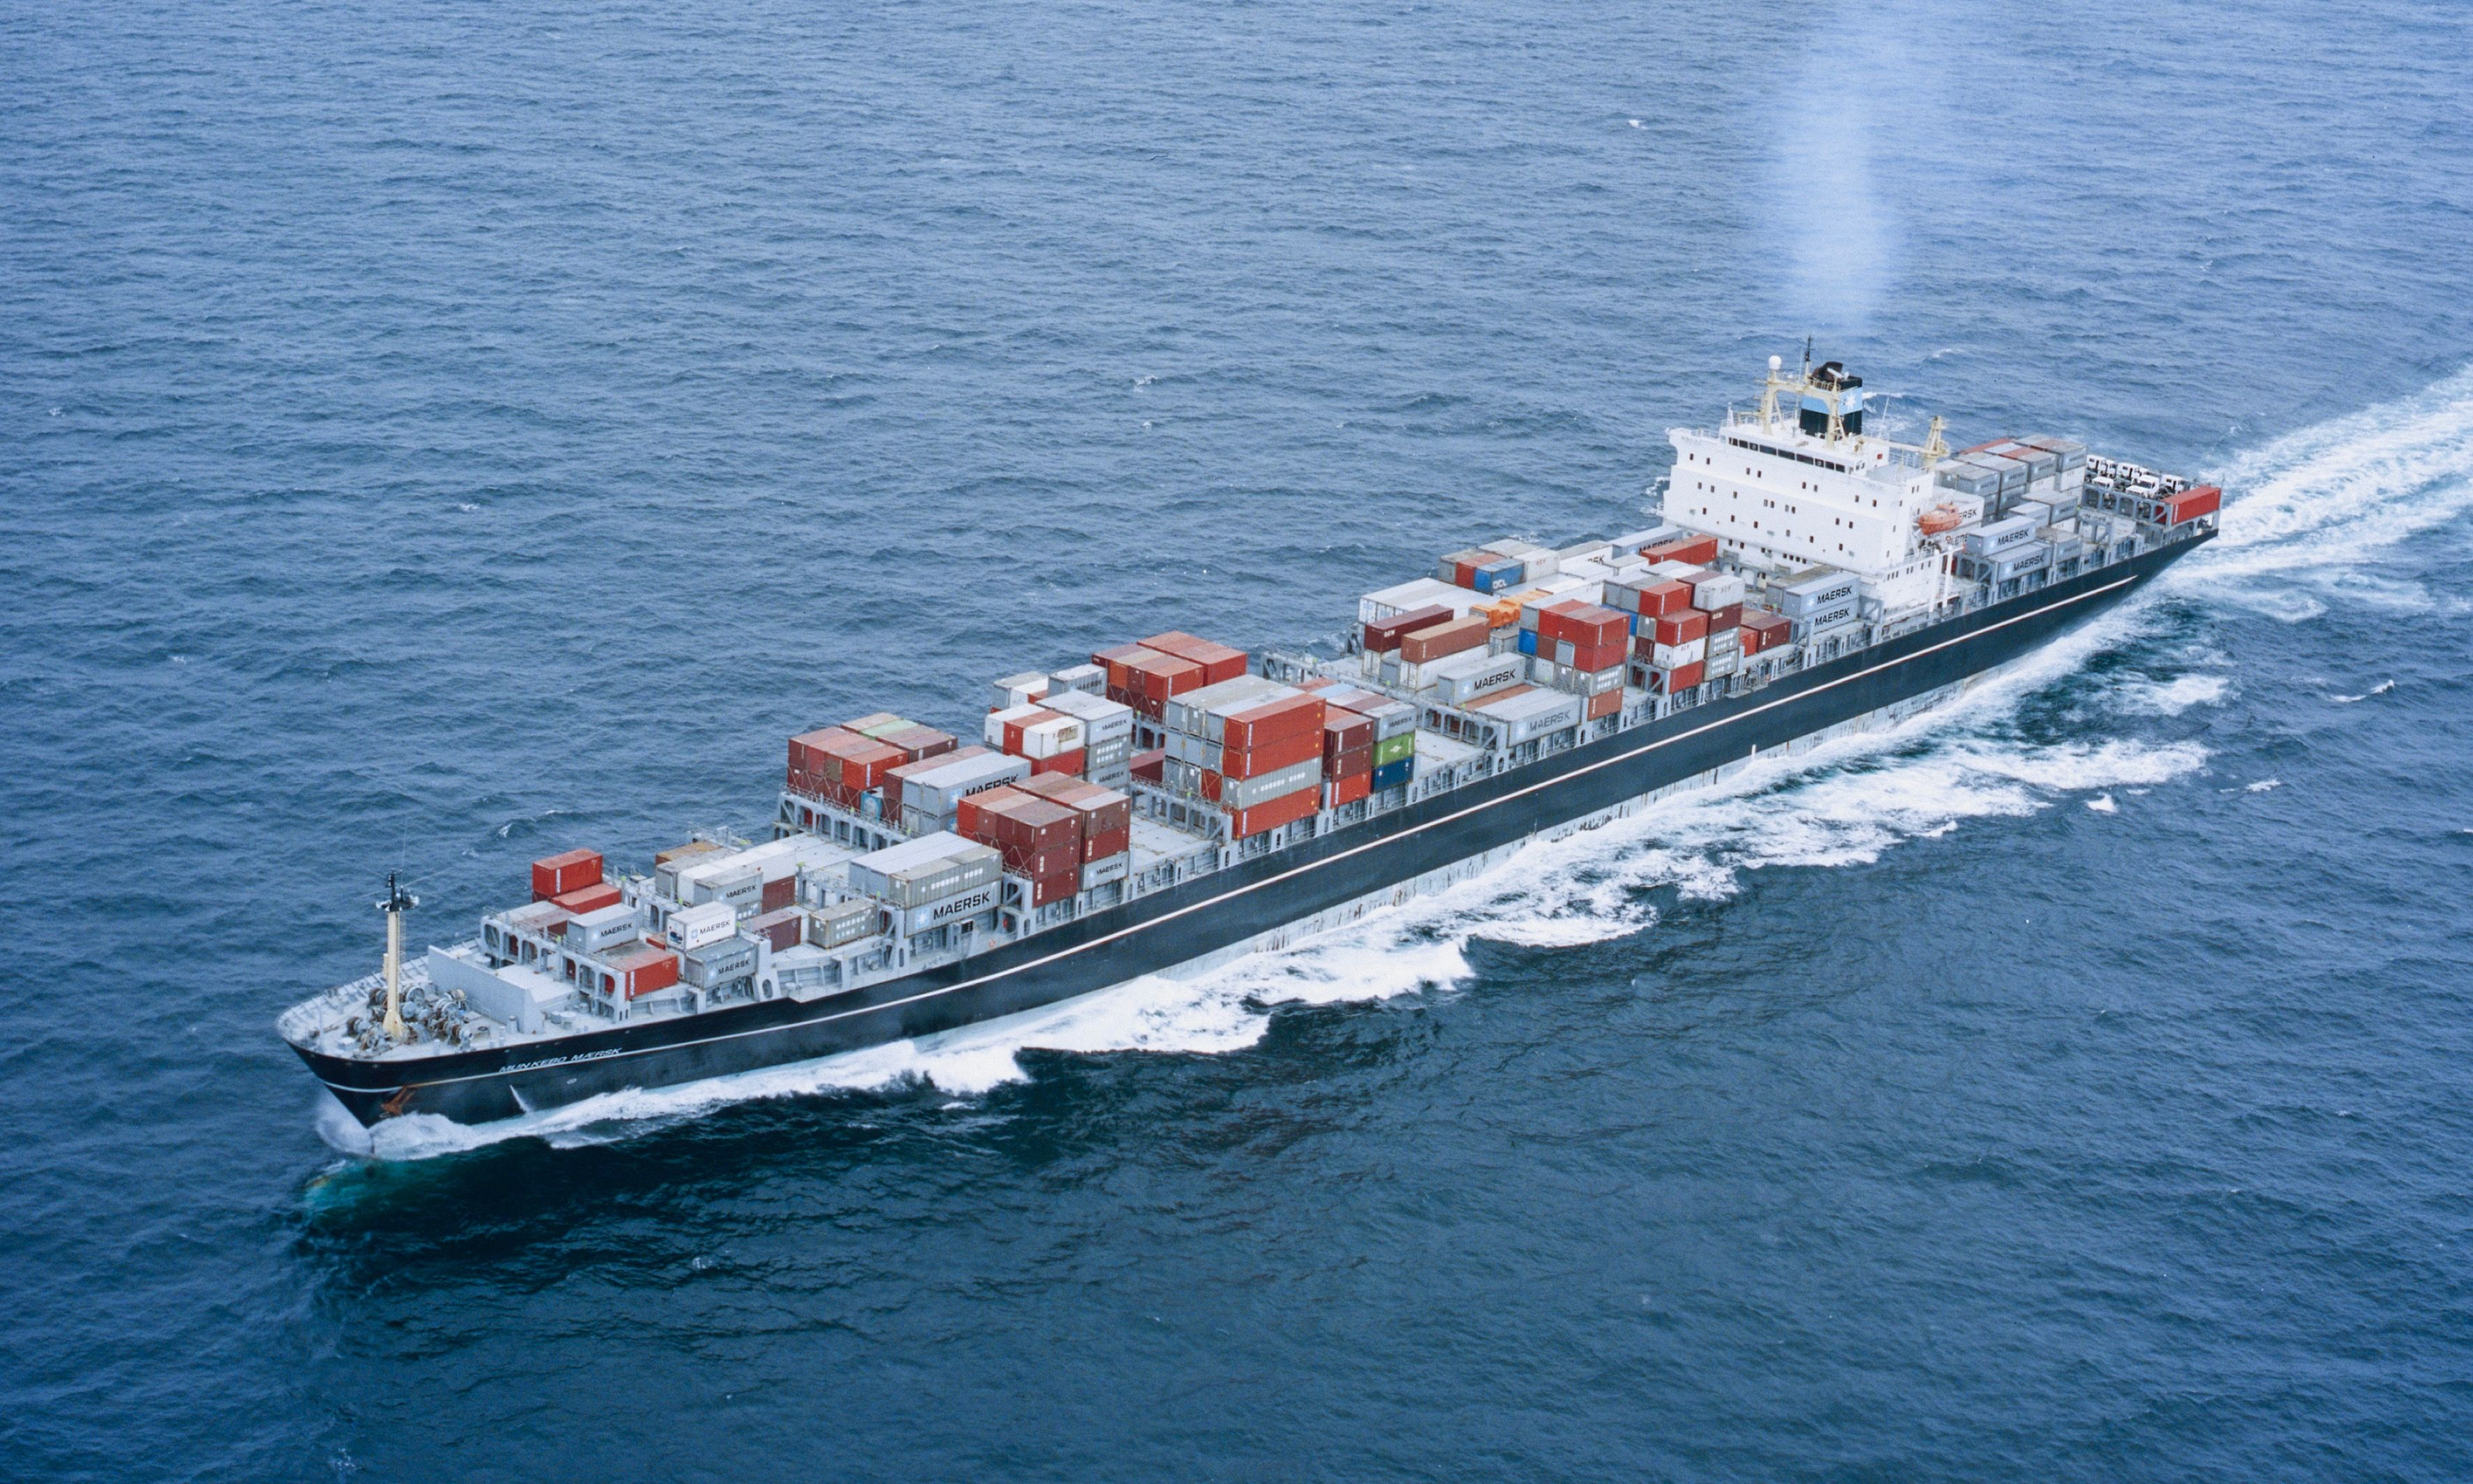 Maersk History - acquisition of EACBEN | Ships in 2019 | Maersk line